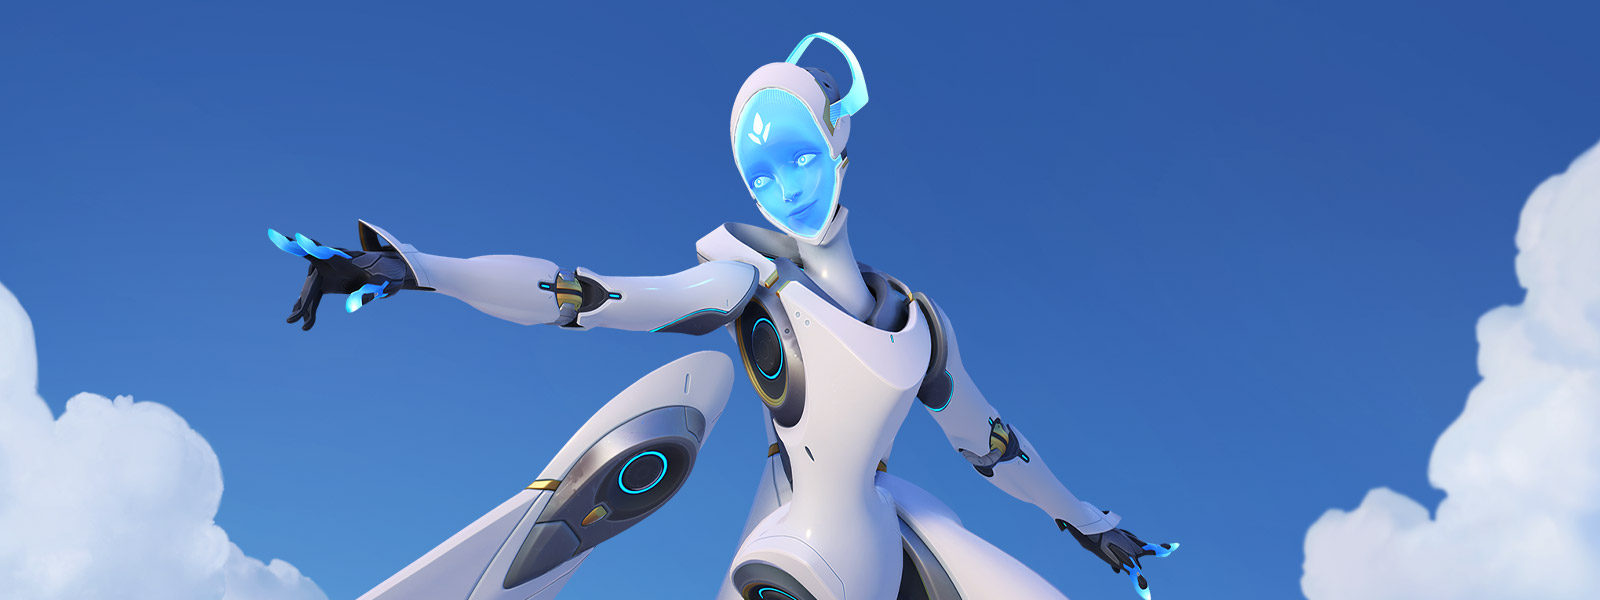 Overwatch character Echo gracefully floats in the air with their arms outstretched.